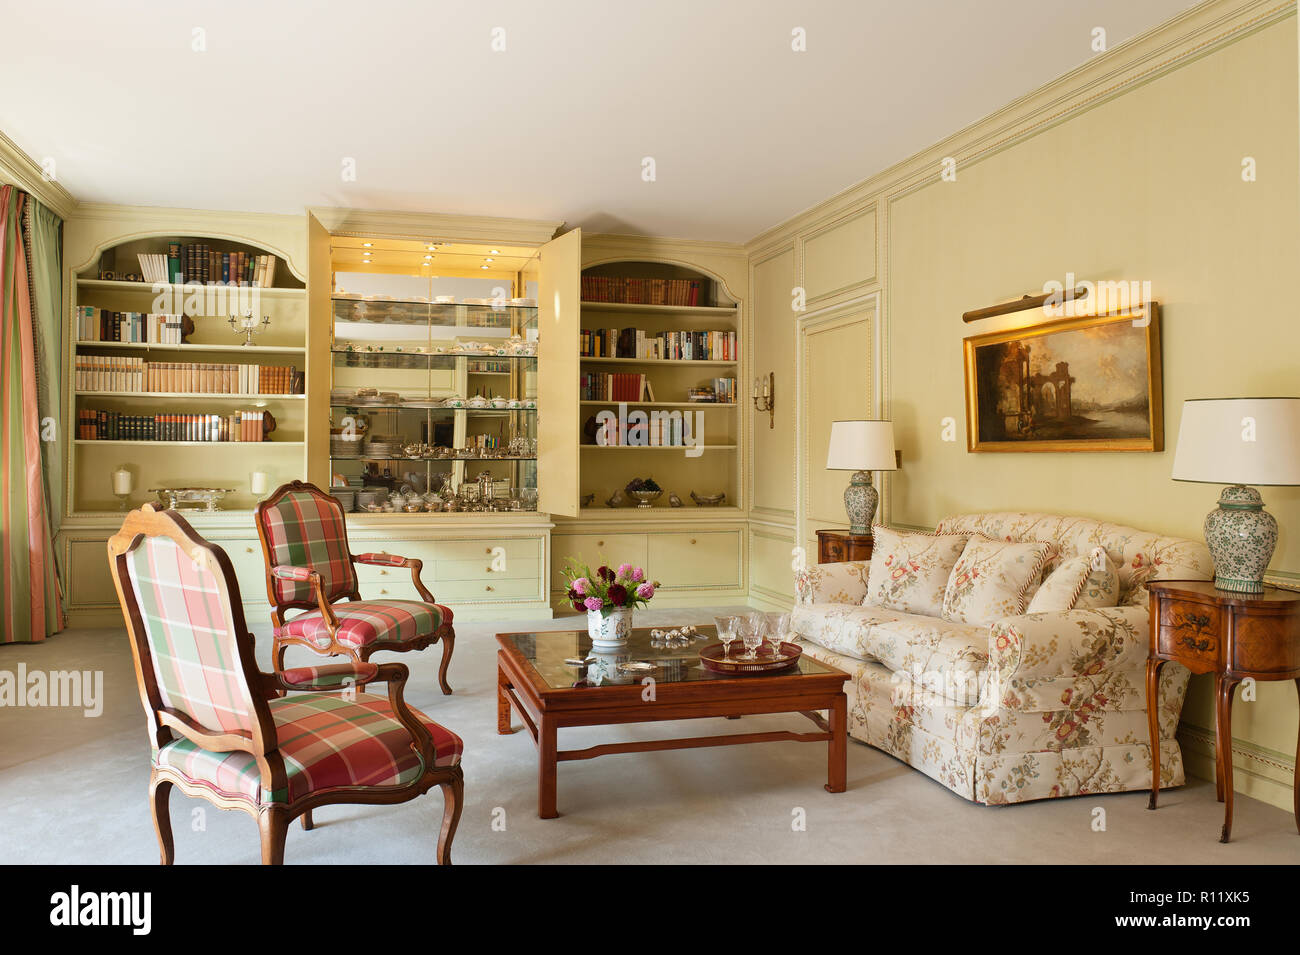 Edwardian living room with built in shelving - Stock Image